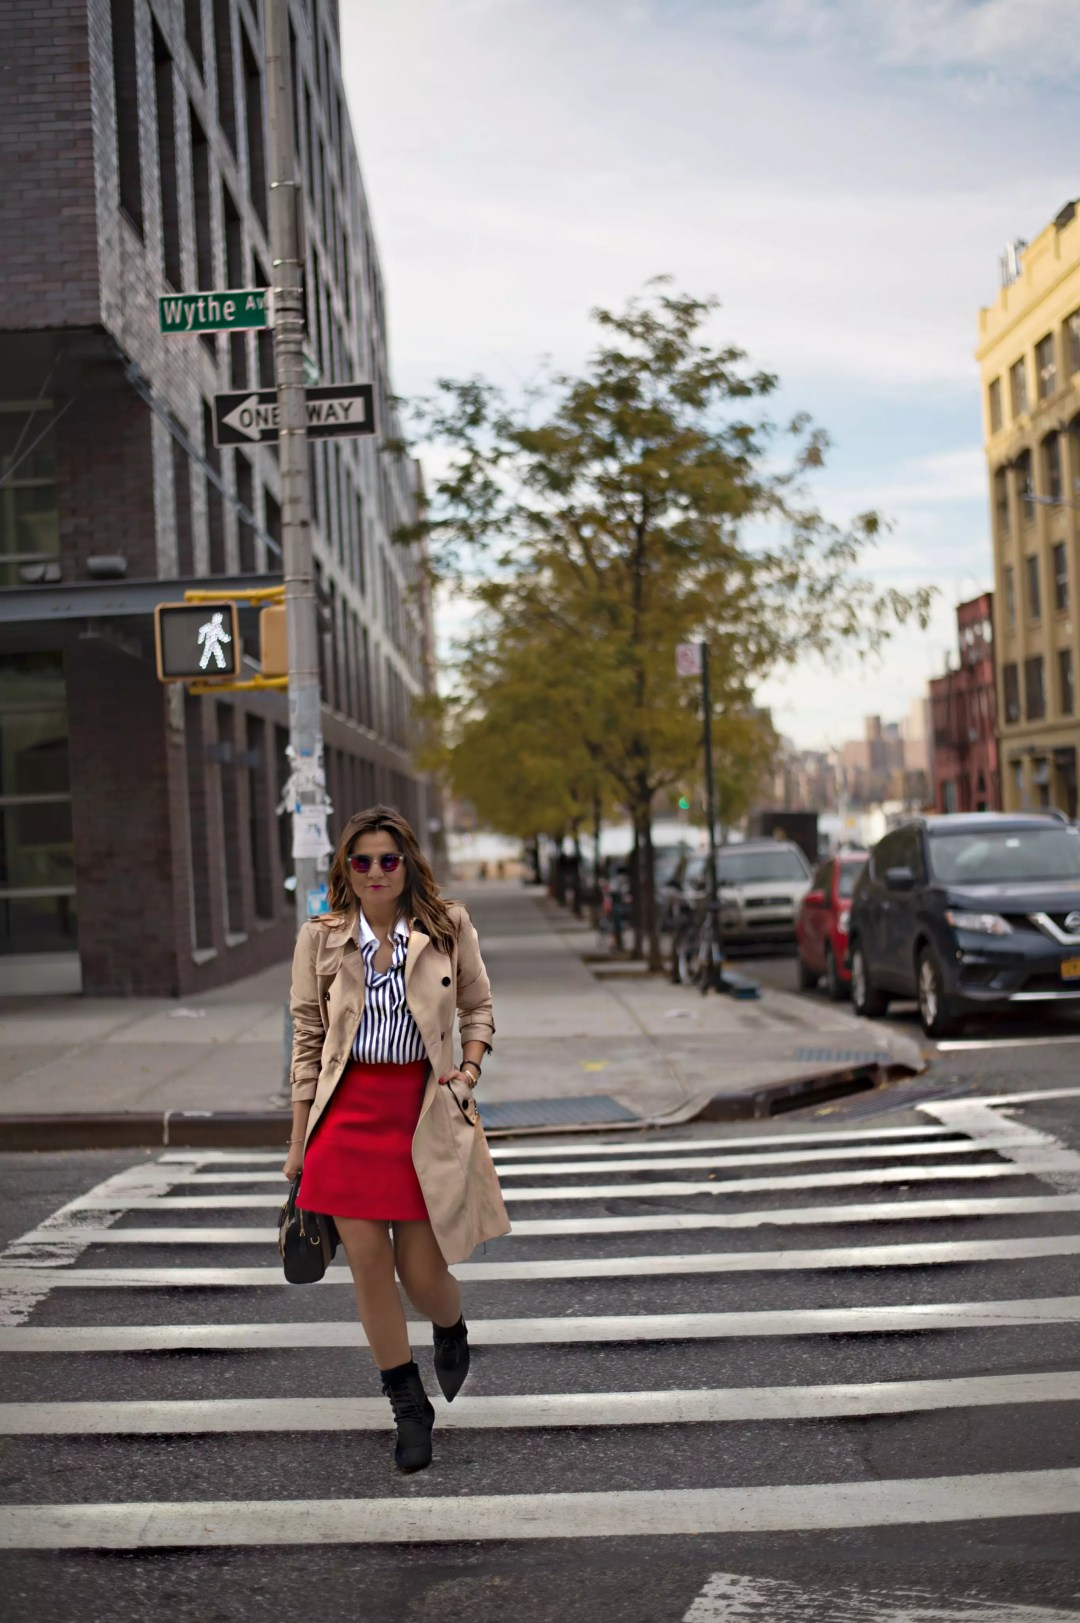 j-crew-a-line-red-skirt-socks-booties-trech-coat-stripe-shirts-street-style-alley-girl